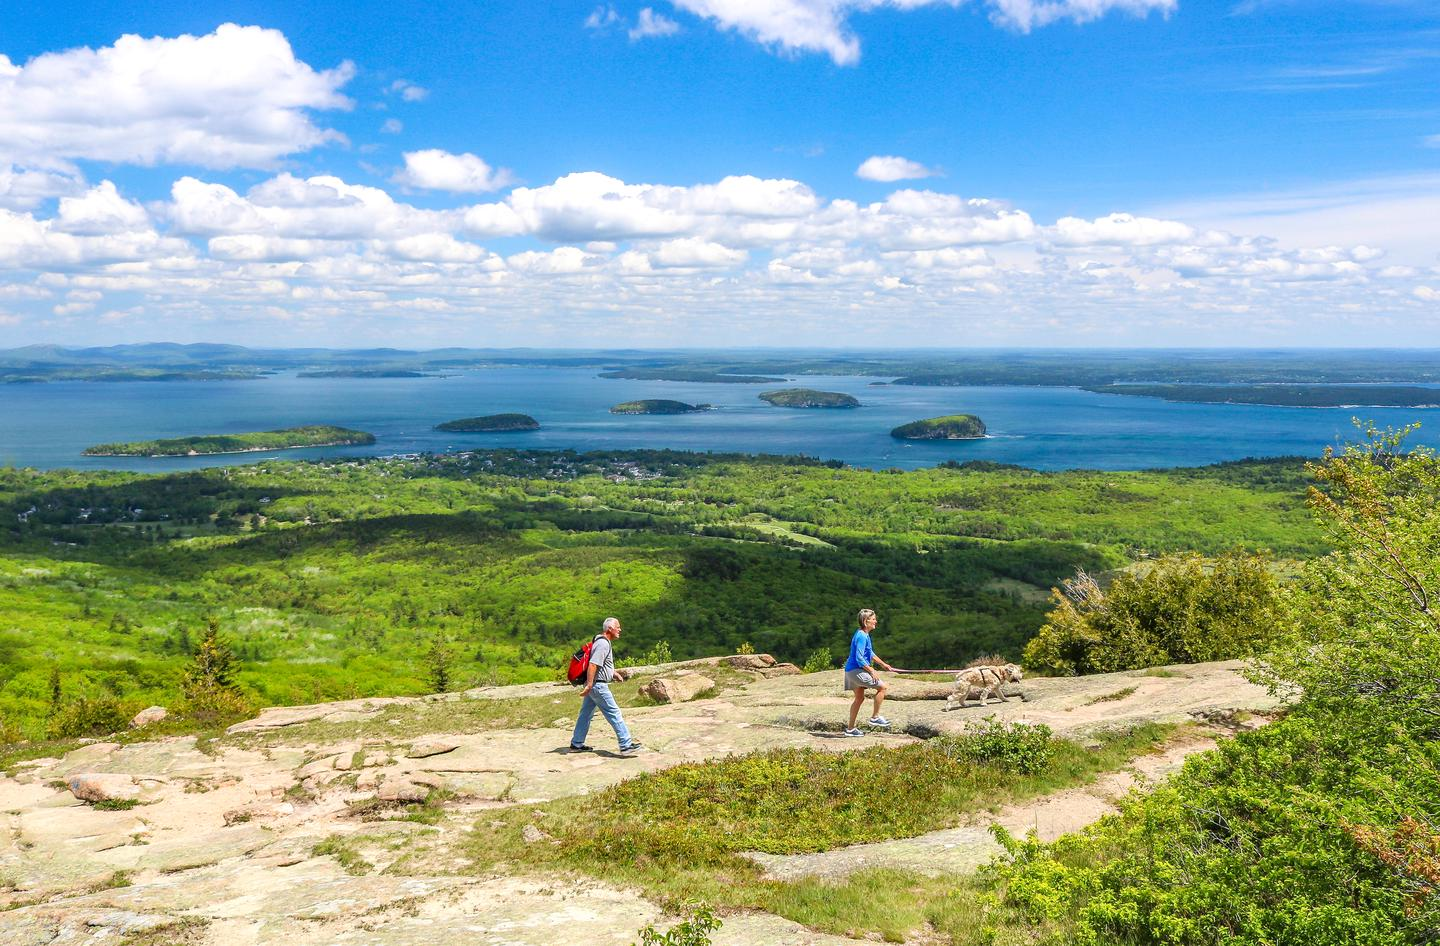 A man wearing a red daypack follows a woman with a golden retriever on a leash hiking from left to right across a granite outcrop in the foreground with forested hills below in the mid-ground and coastal islands dotting the ocean and billowy clouds above in the distant background.Hikers ascending Cadillac Mountain on the Cadillac North Ridge Trail with views of the Porcupine Islands and Frenchman Bay beyond.